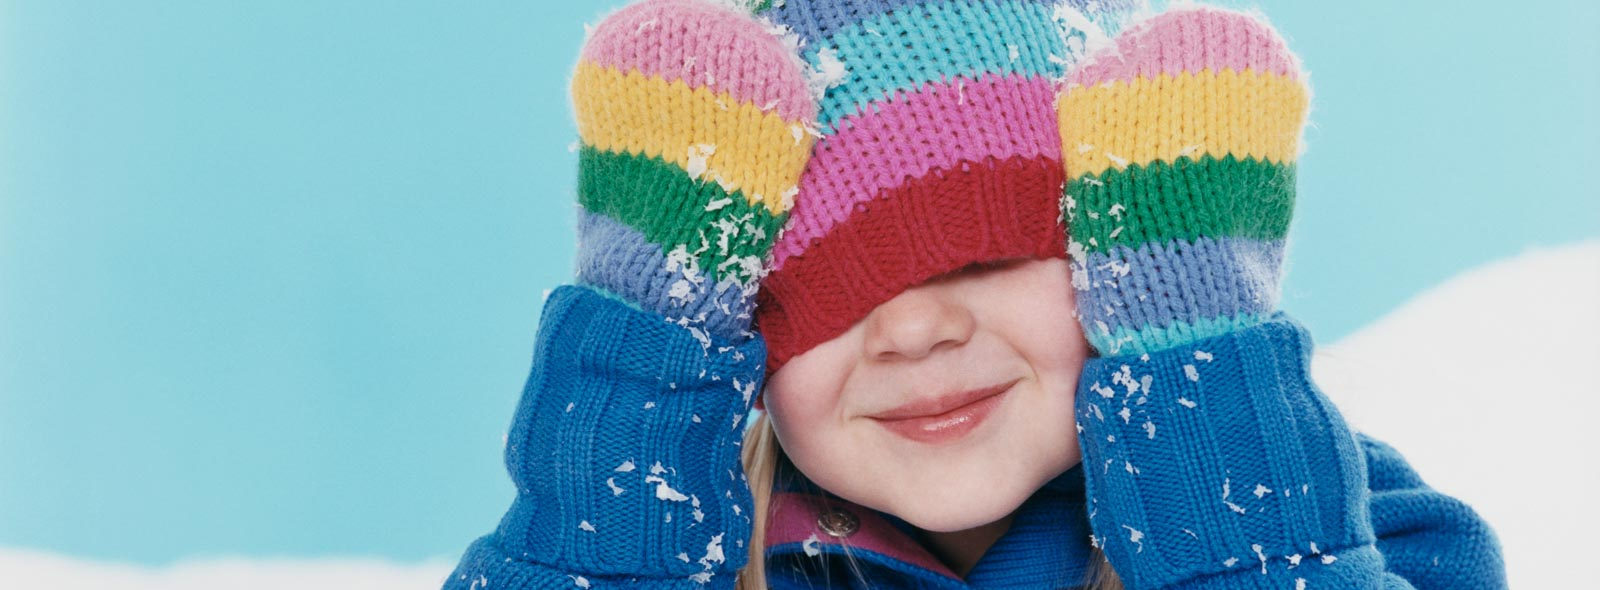 young girl smiling wearing mittens with hands on head